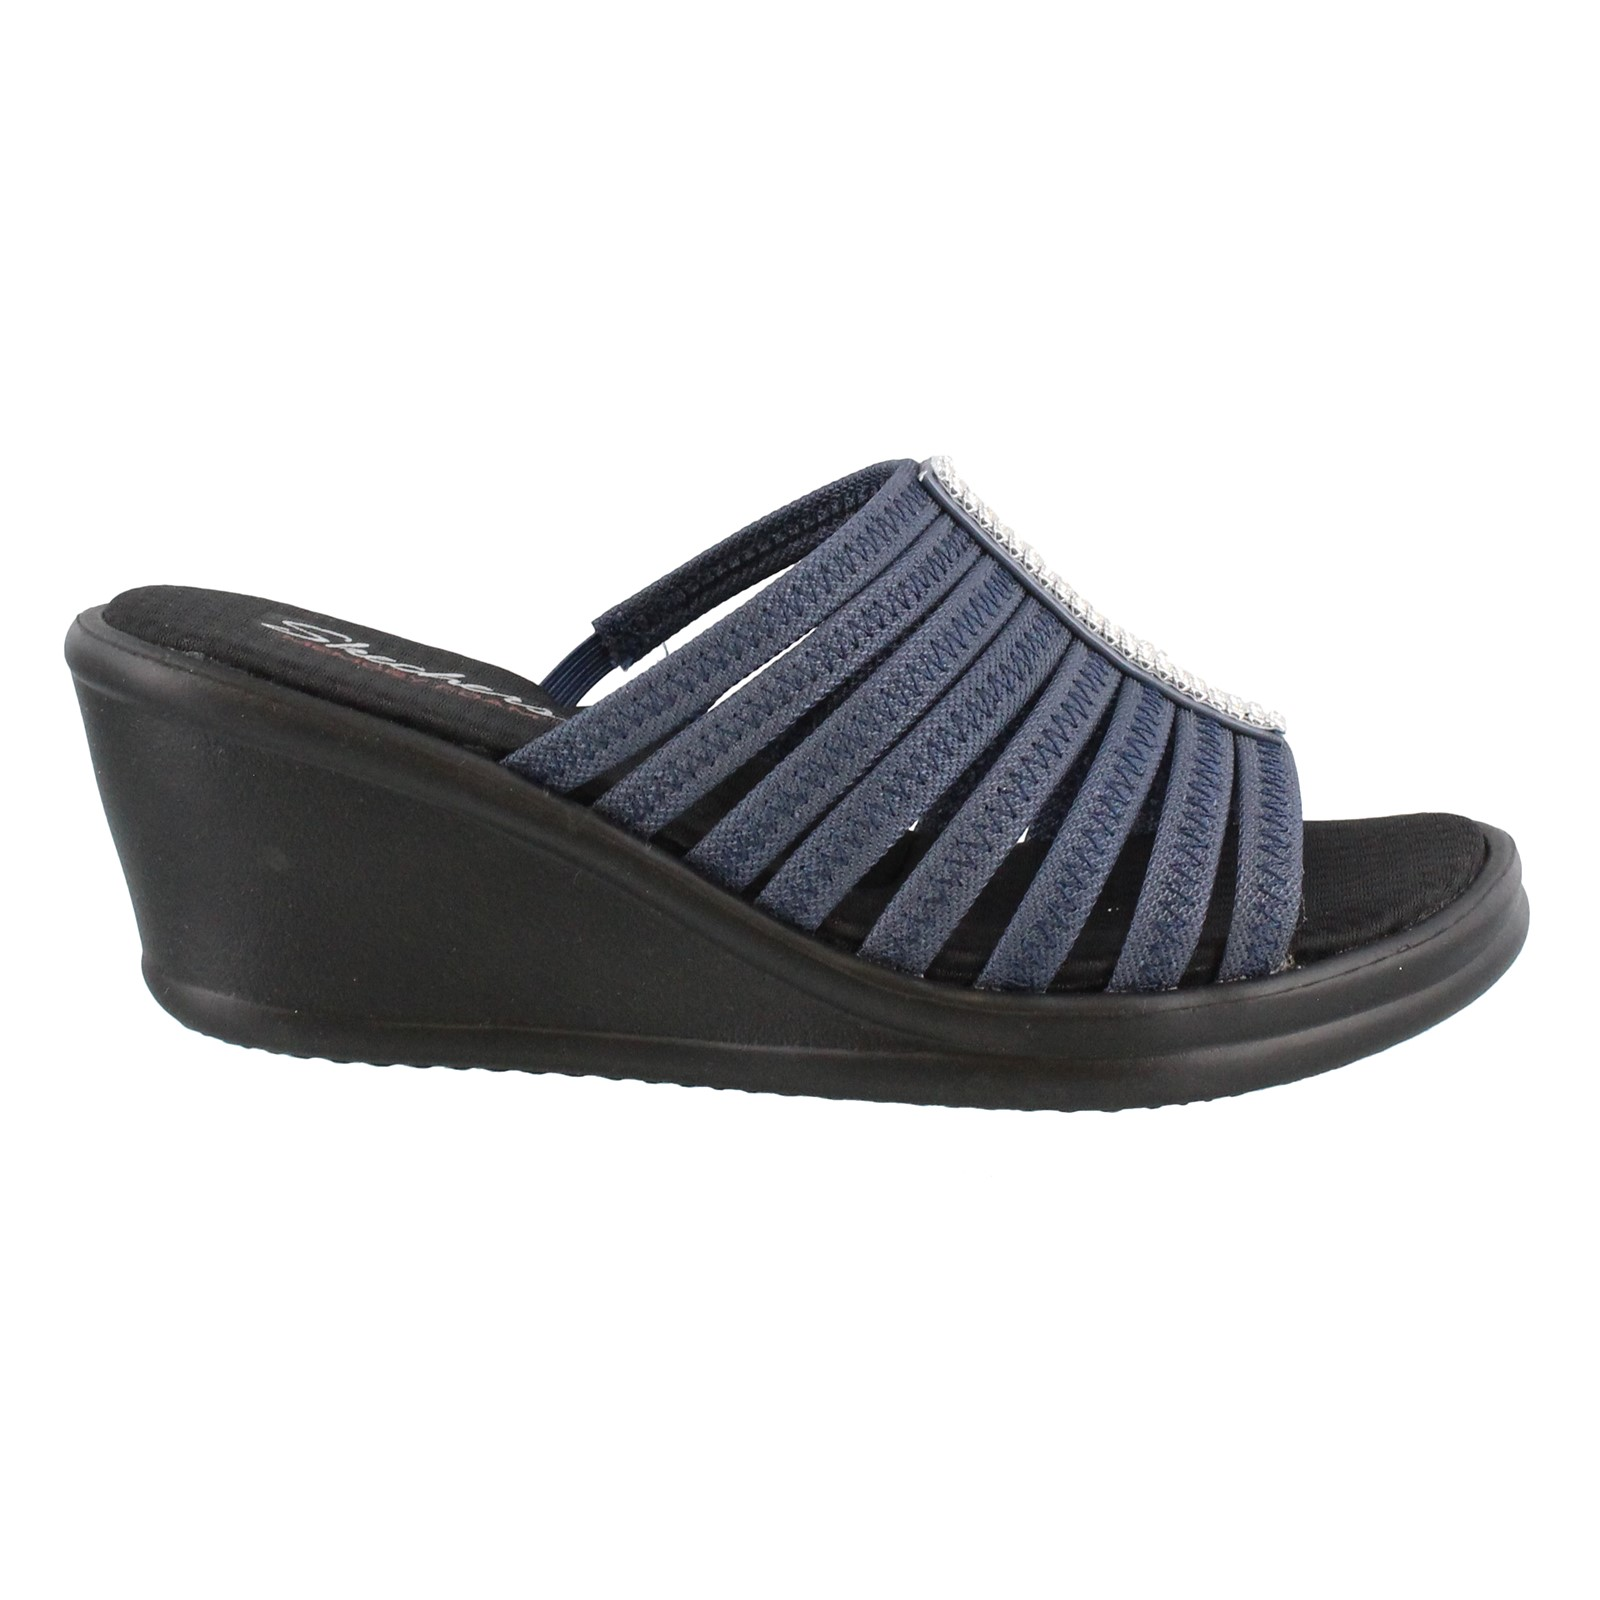 skechers rumblers sandals